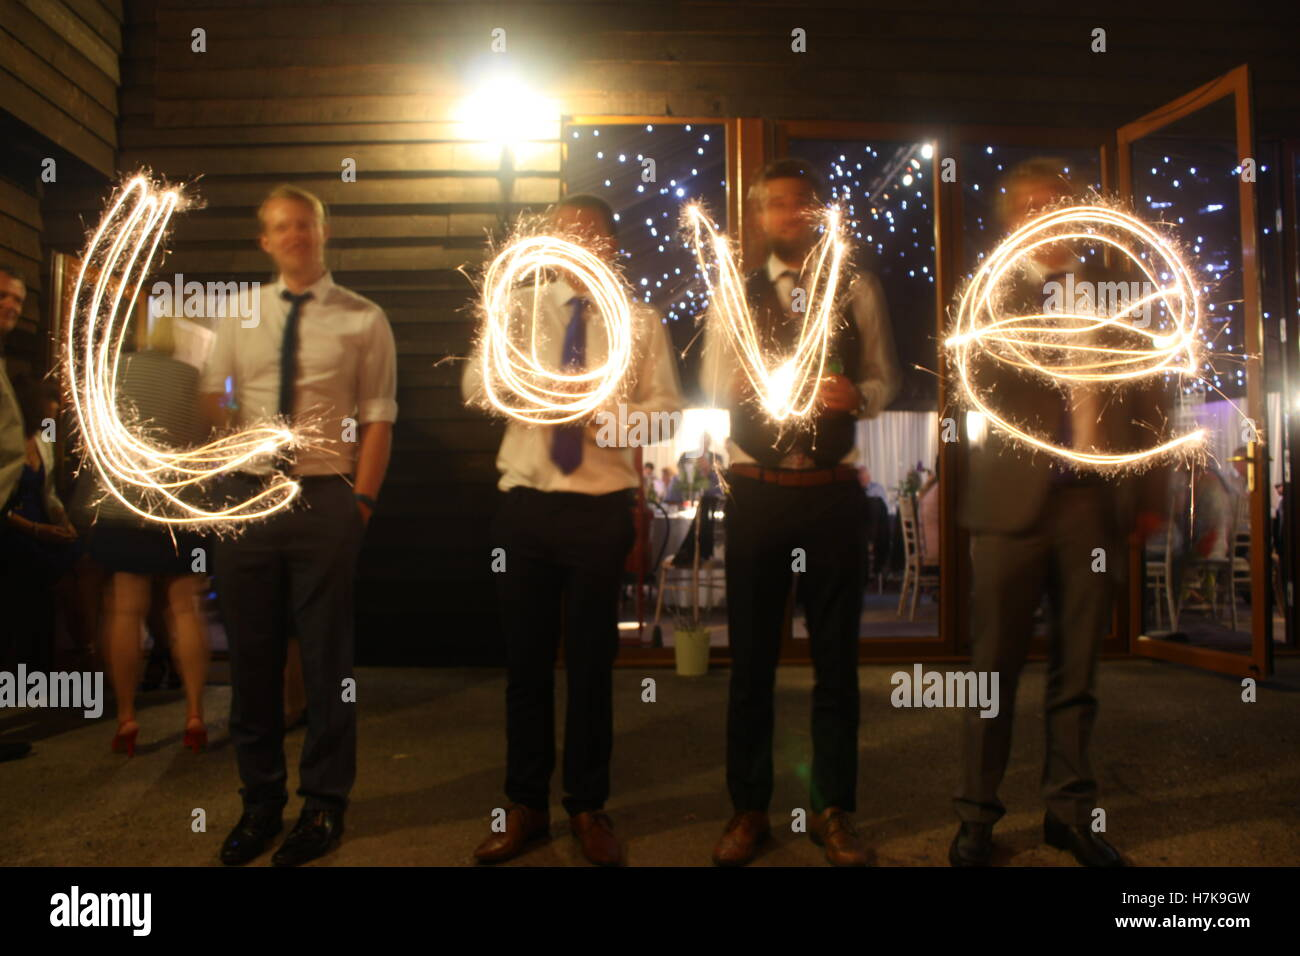 Love written with sparklers at a wedding - Stock Image